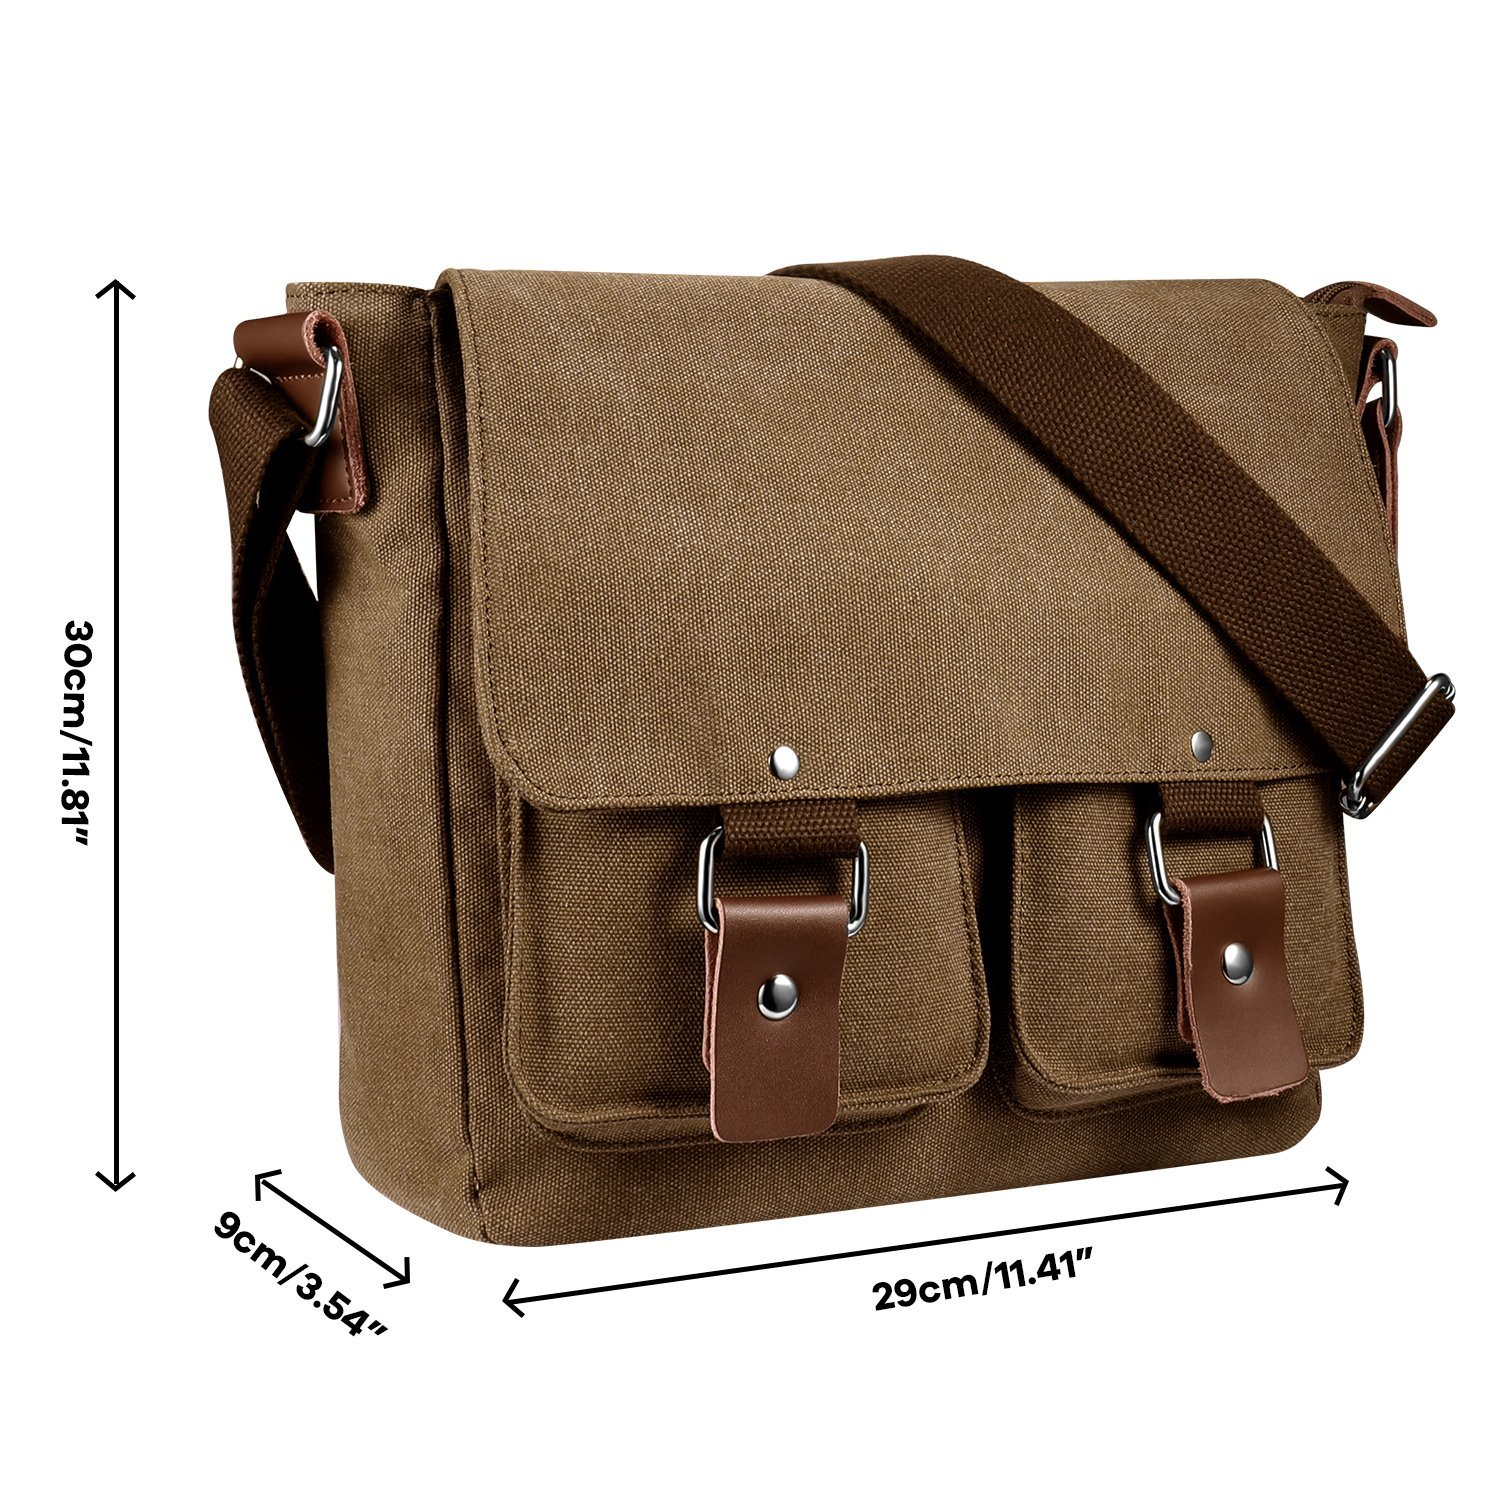 b4af8e2ba46 Amazon.com  Men s Multifunctional Vintage Canvas Leather Messenger Bag  EXKOKORO, Crossbody Side Travel Bag(Brown)  Computers   Accessories